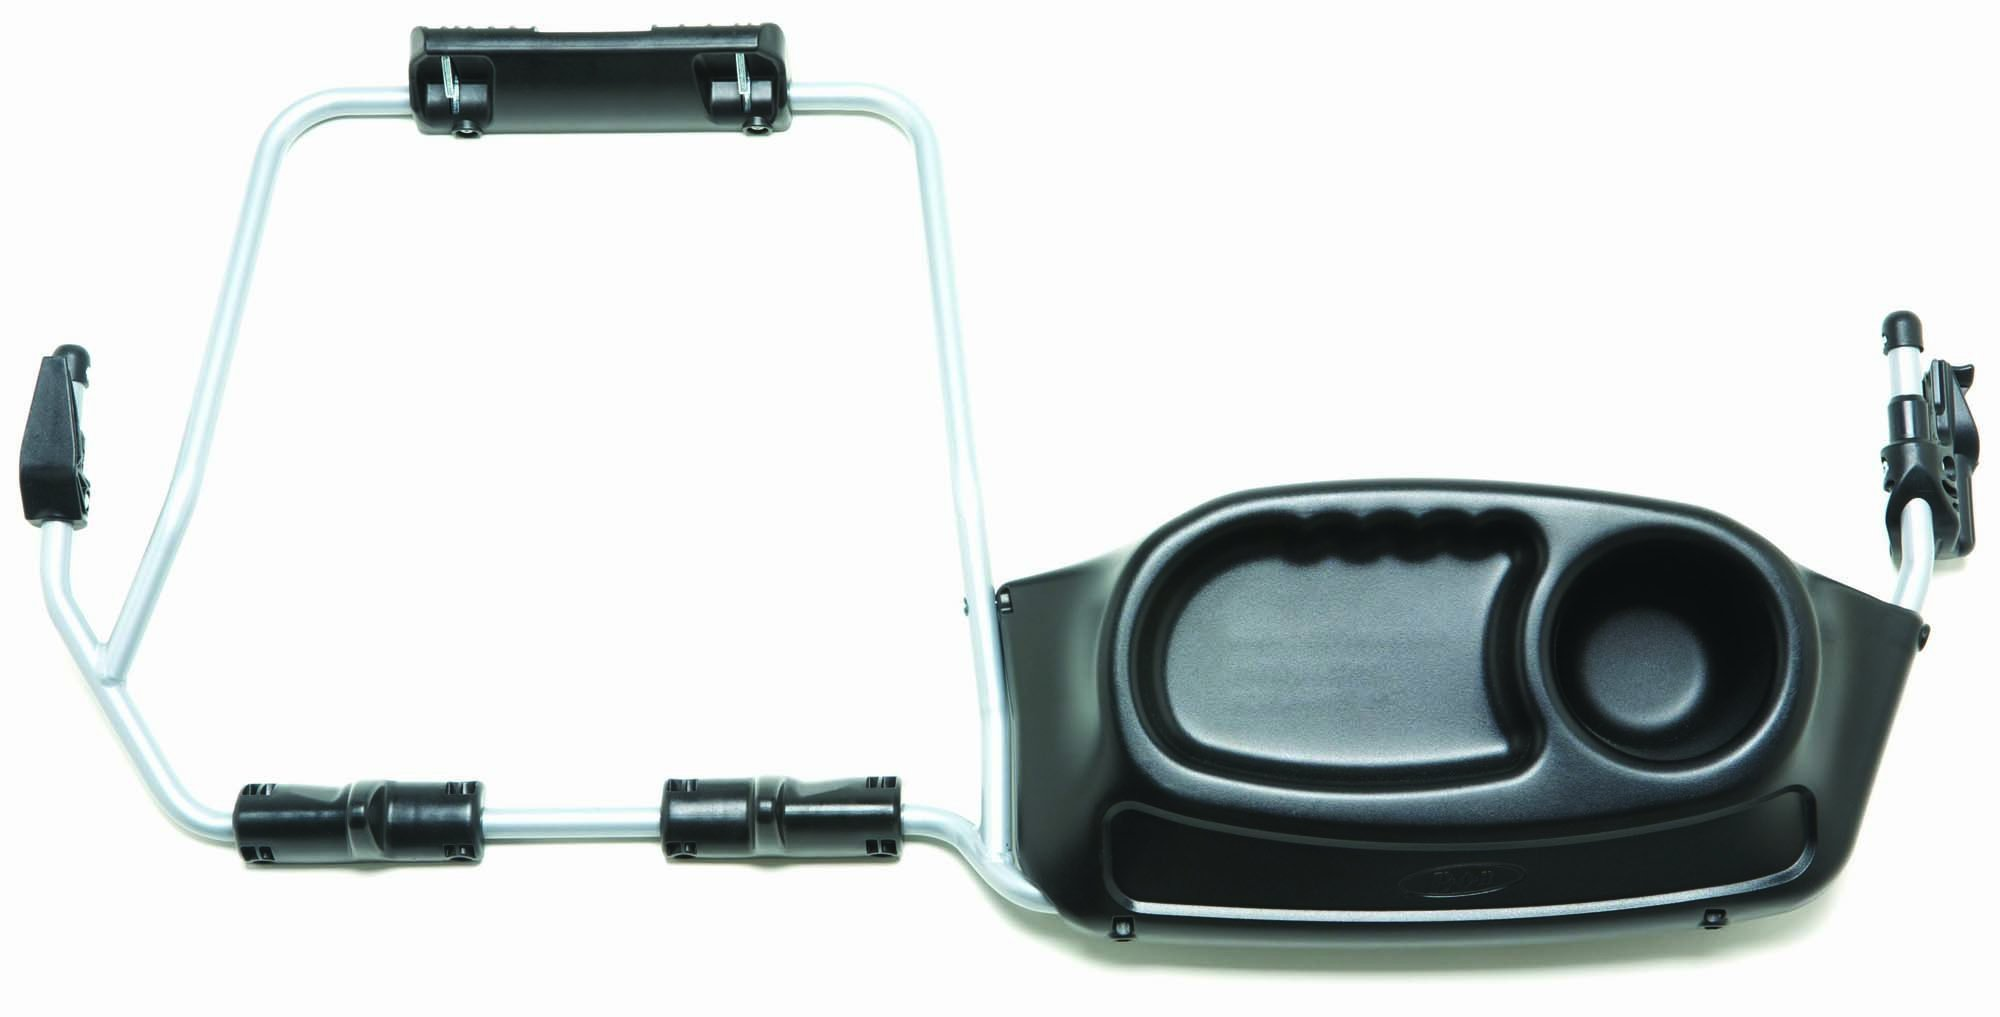 Bob Pre-2016 Duallie Infant Car Seat Adapter For Graco Classic Connect